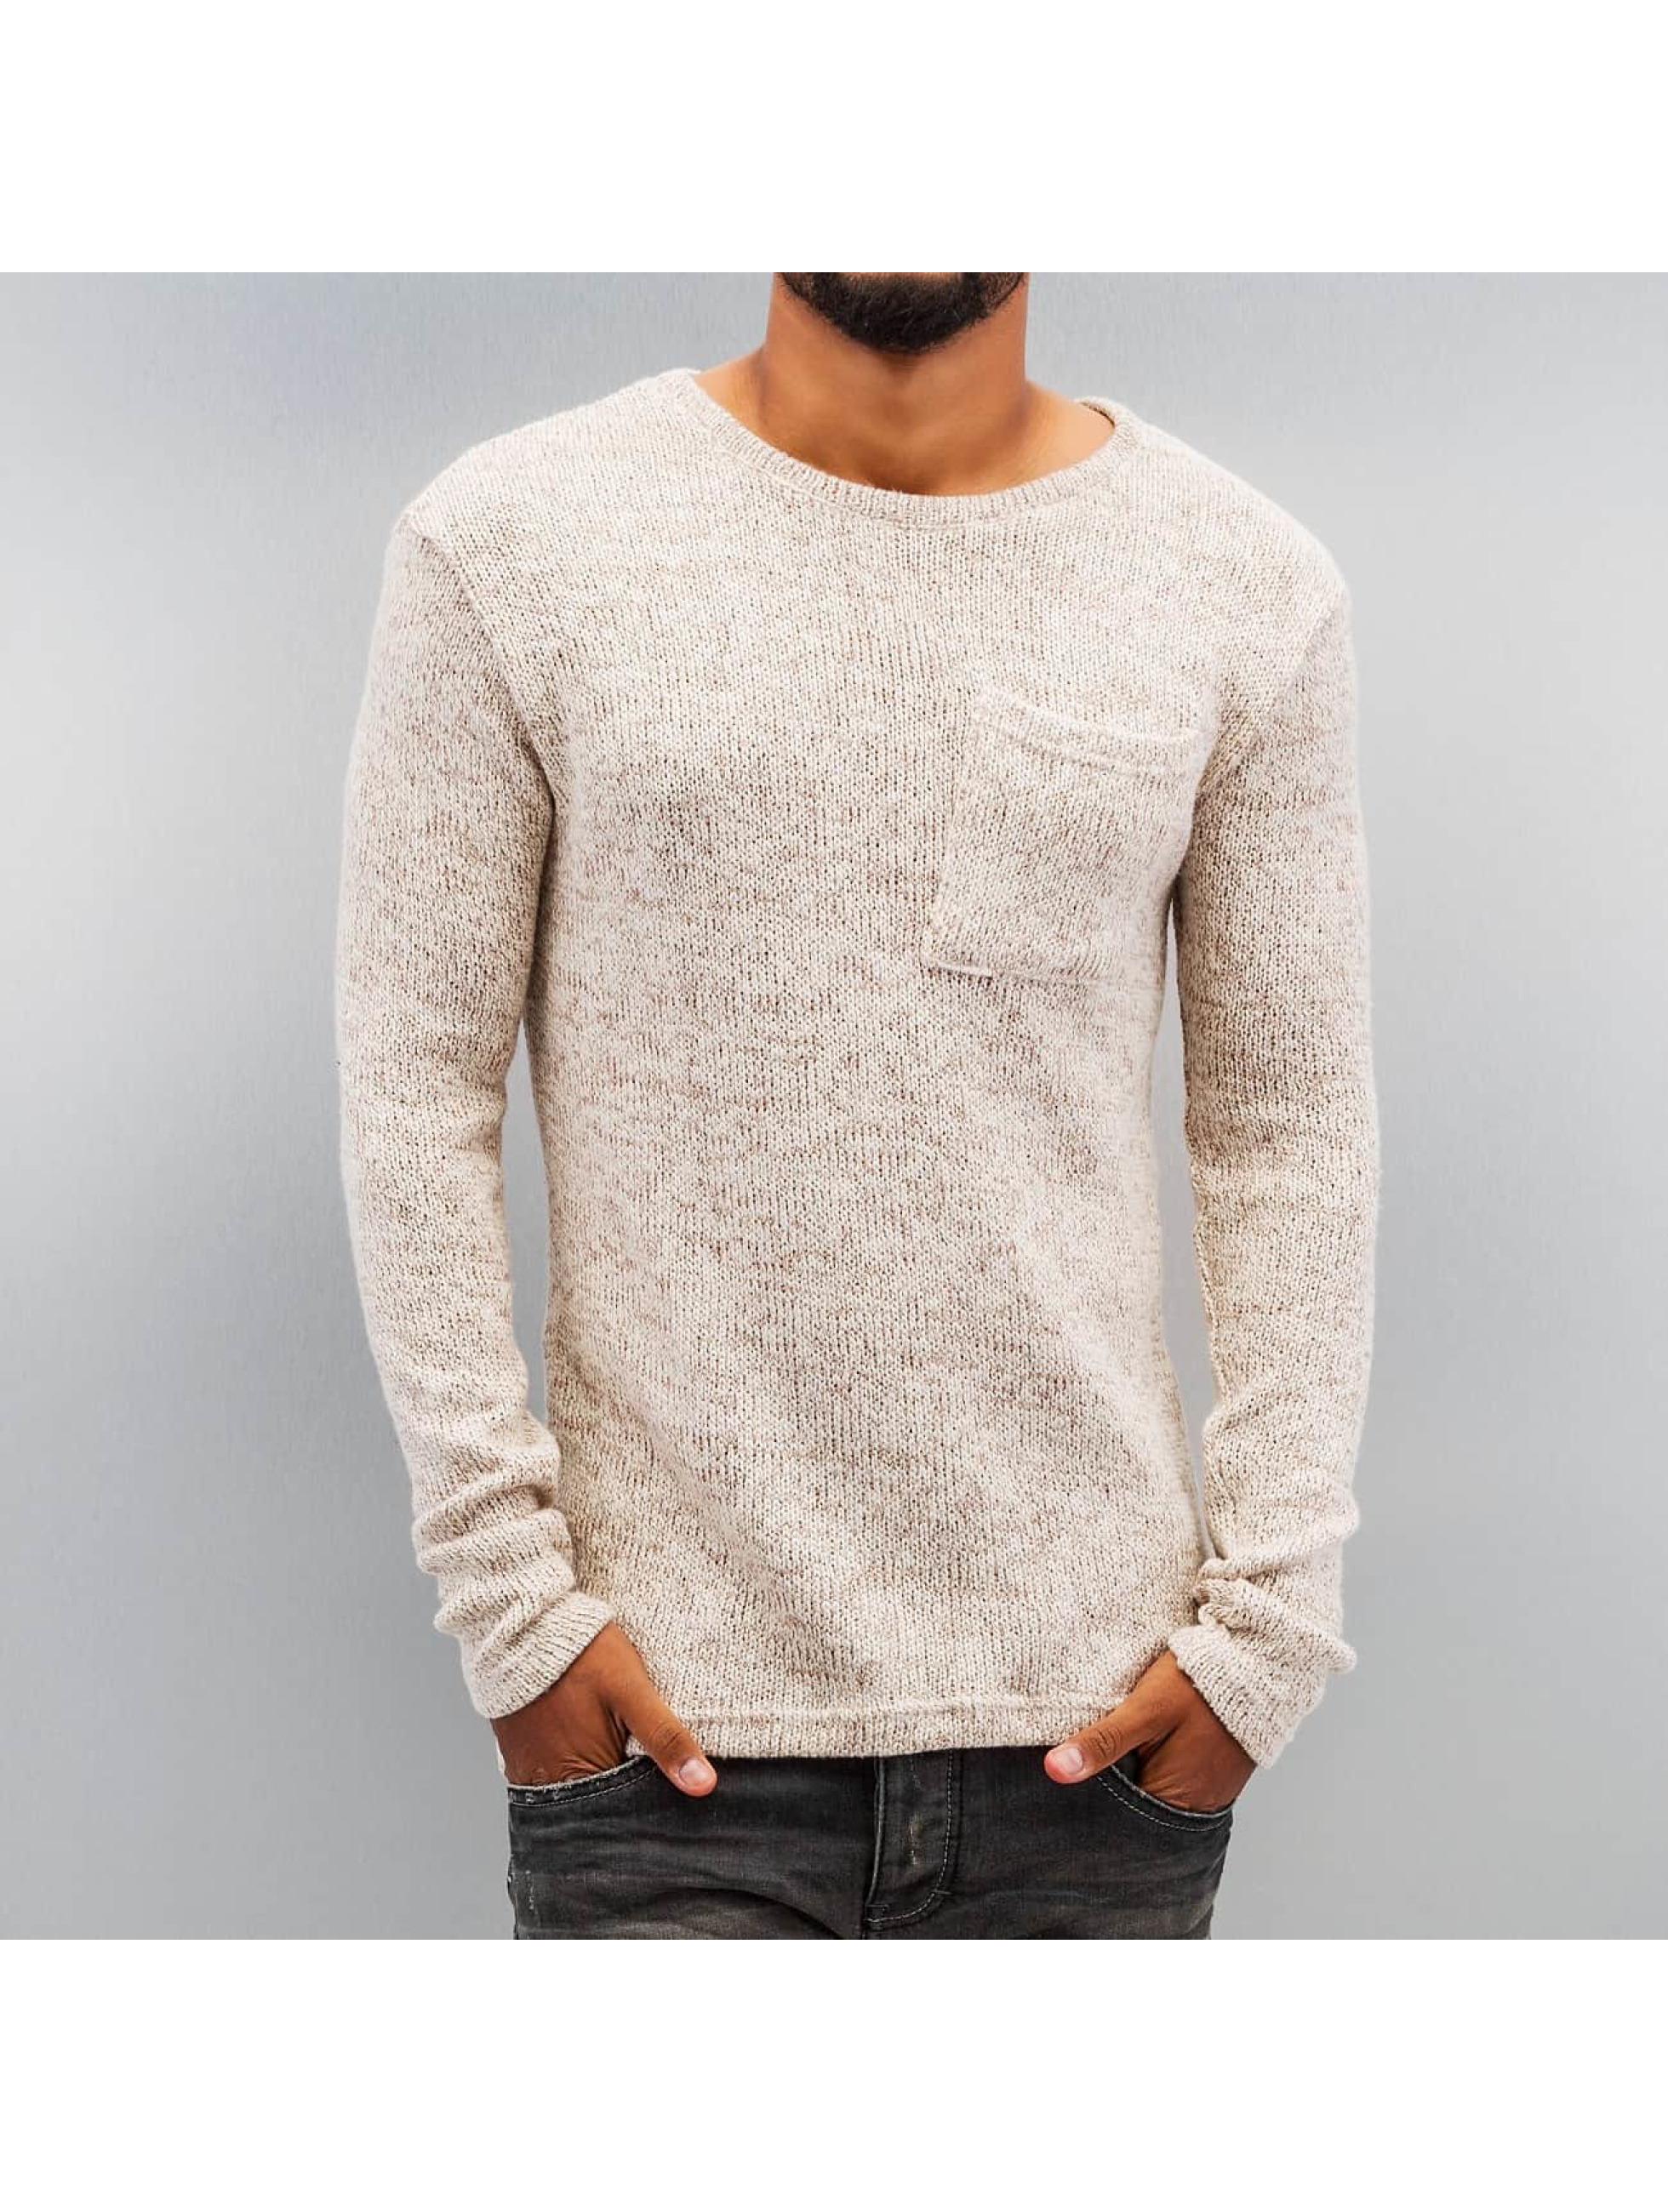 Pullover Knit in beige